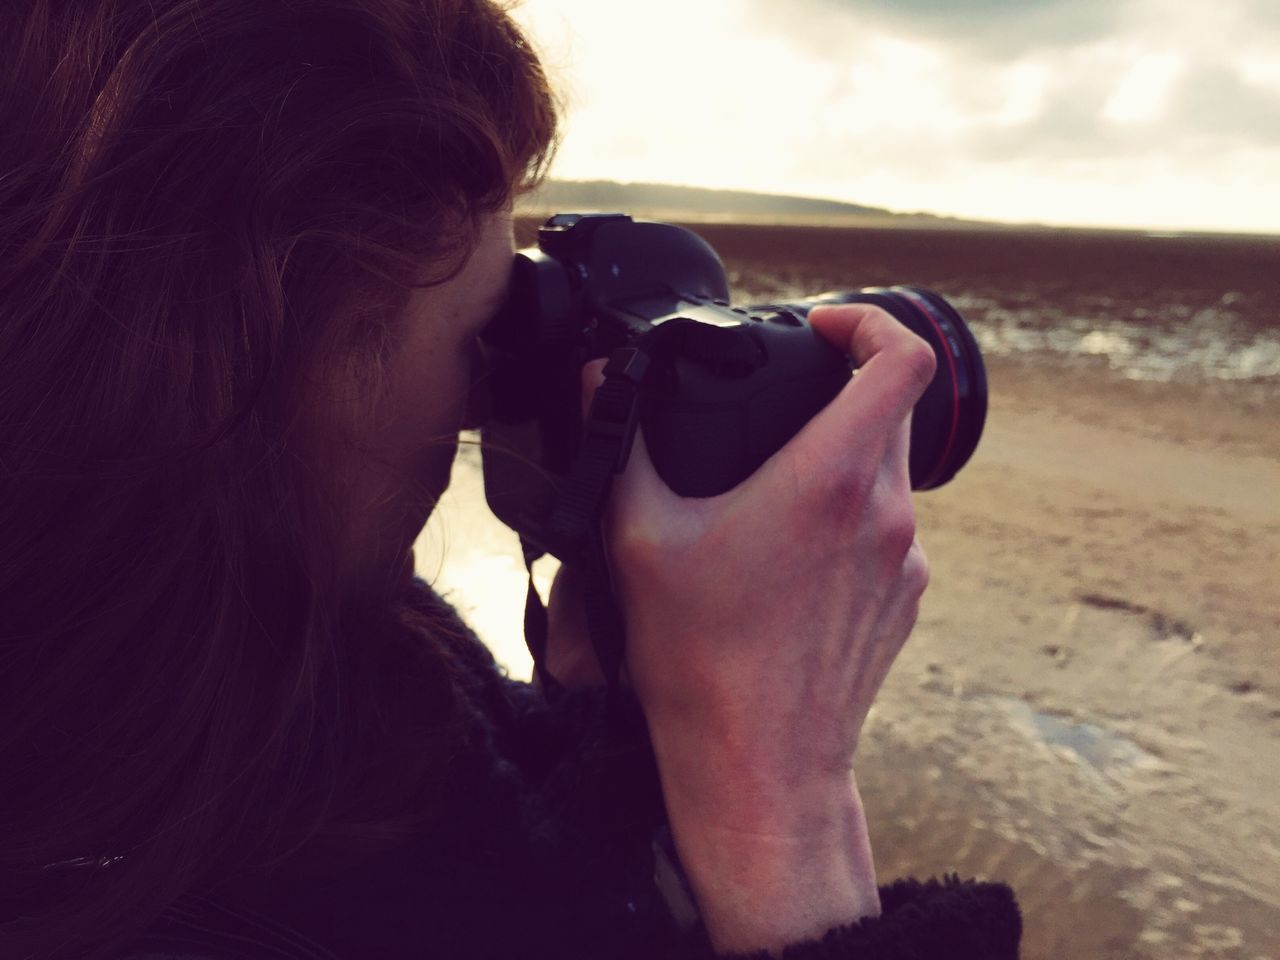 Photographer Snap Beach Landscape Openess Taking A Picture Sea Sky Clouds Individuality Click Golden Hour Passionate Photography Life Through A Lens